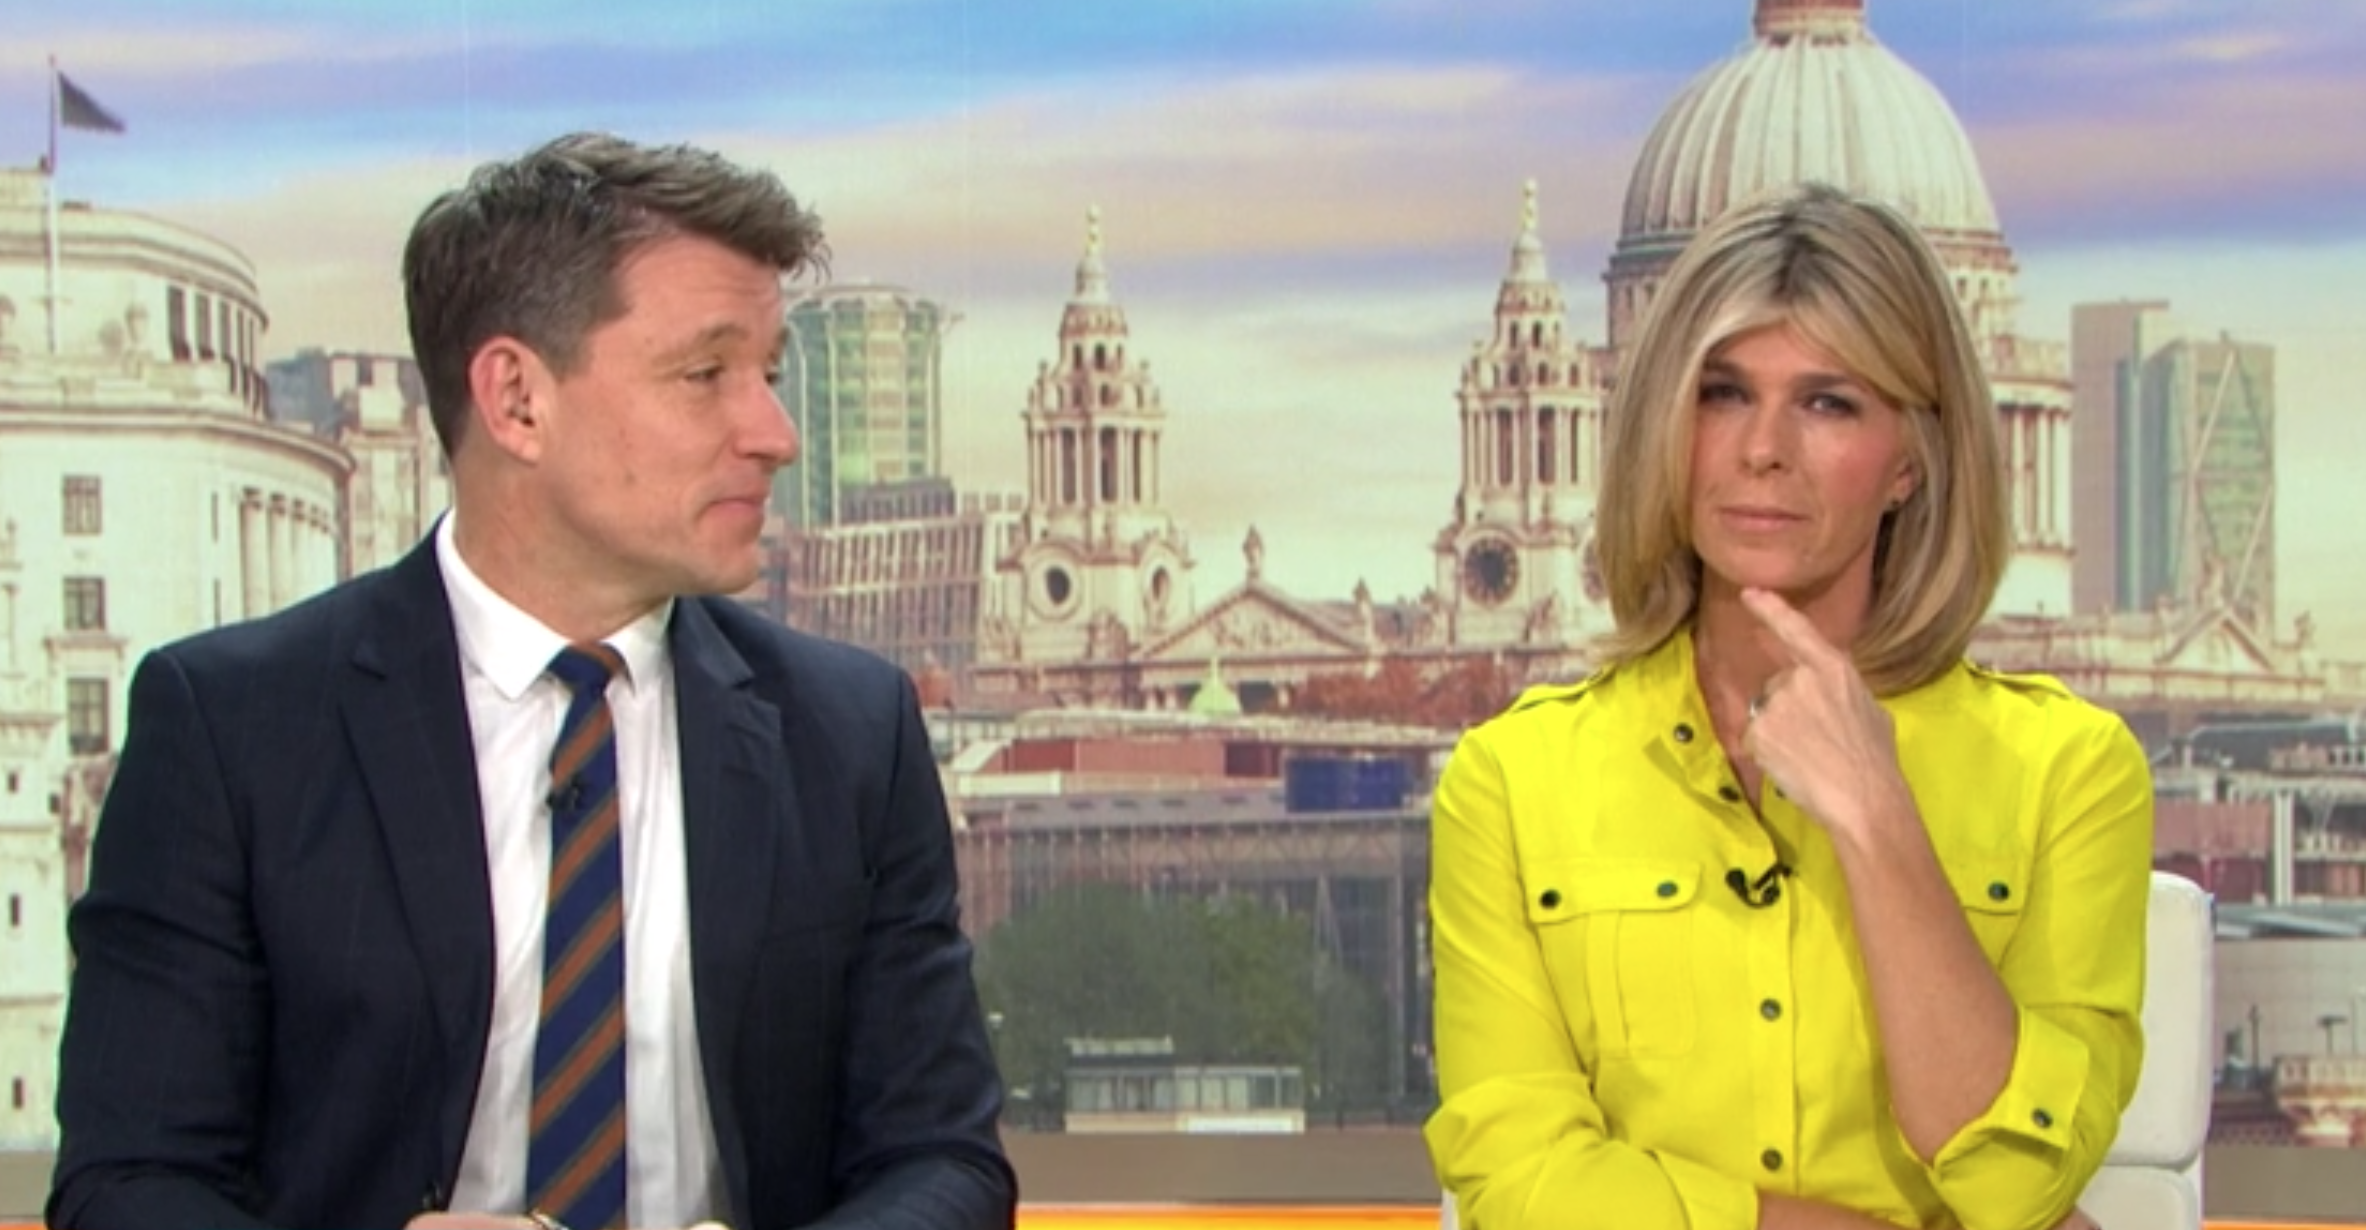 Disgusted viewers blast Good Morning Britain after 'spotting naked life model's penis on TV'